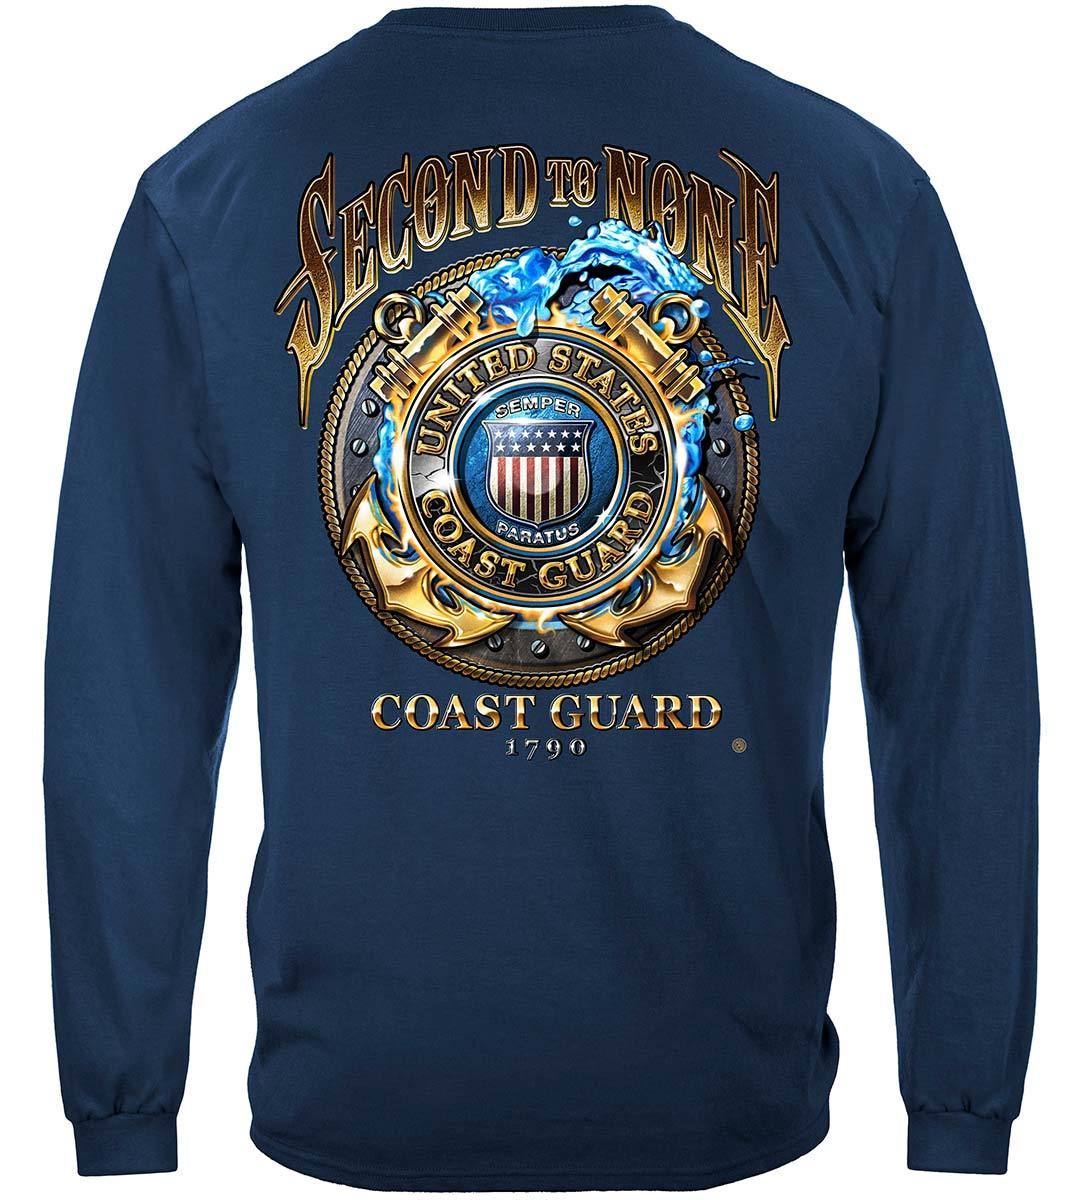 US Coast Guard Second To None Premium T-Shirt